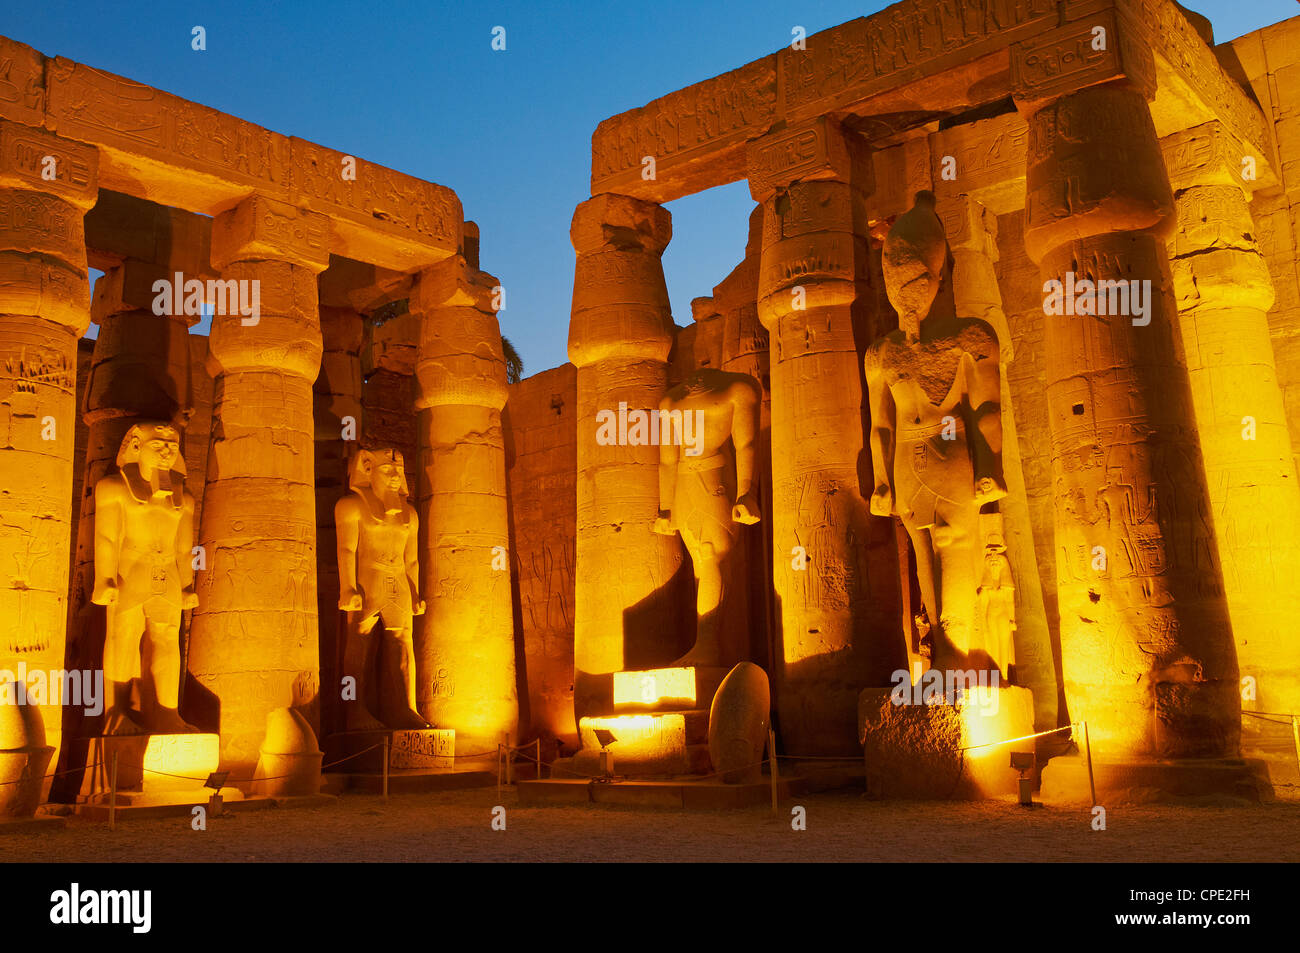 Great Court of Ramesses II and colossal statues of Ramesses II, Temple of Luxor, Thebes, Egypt, Africa - Stock Image